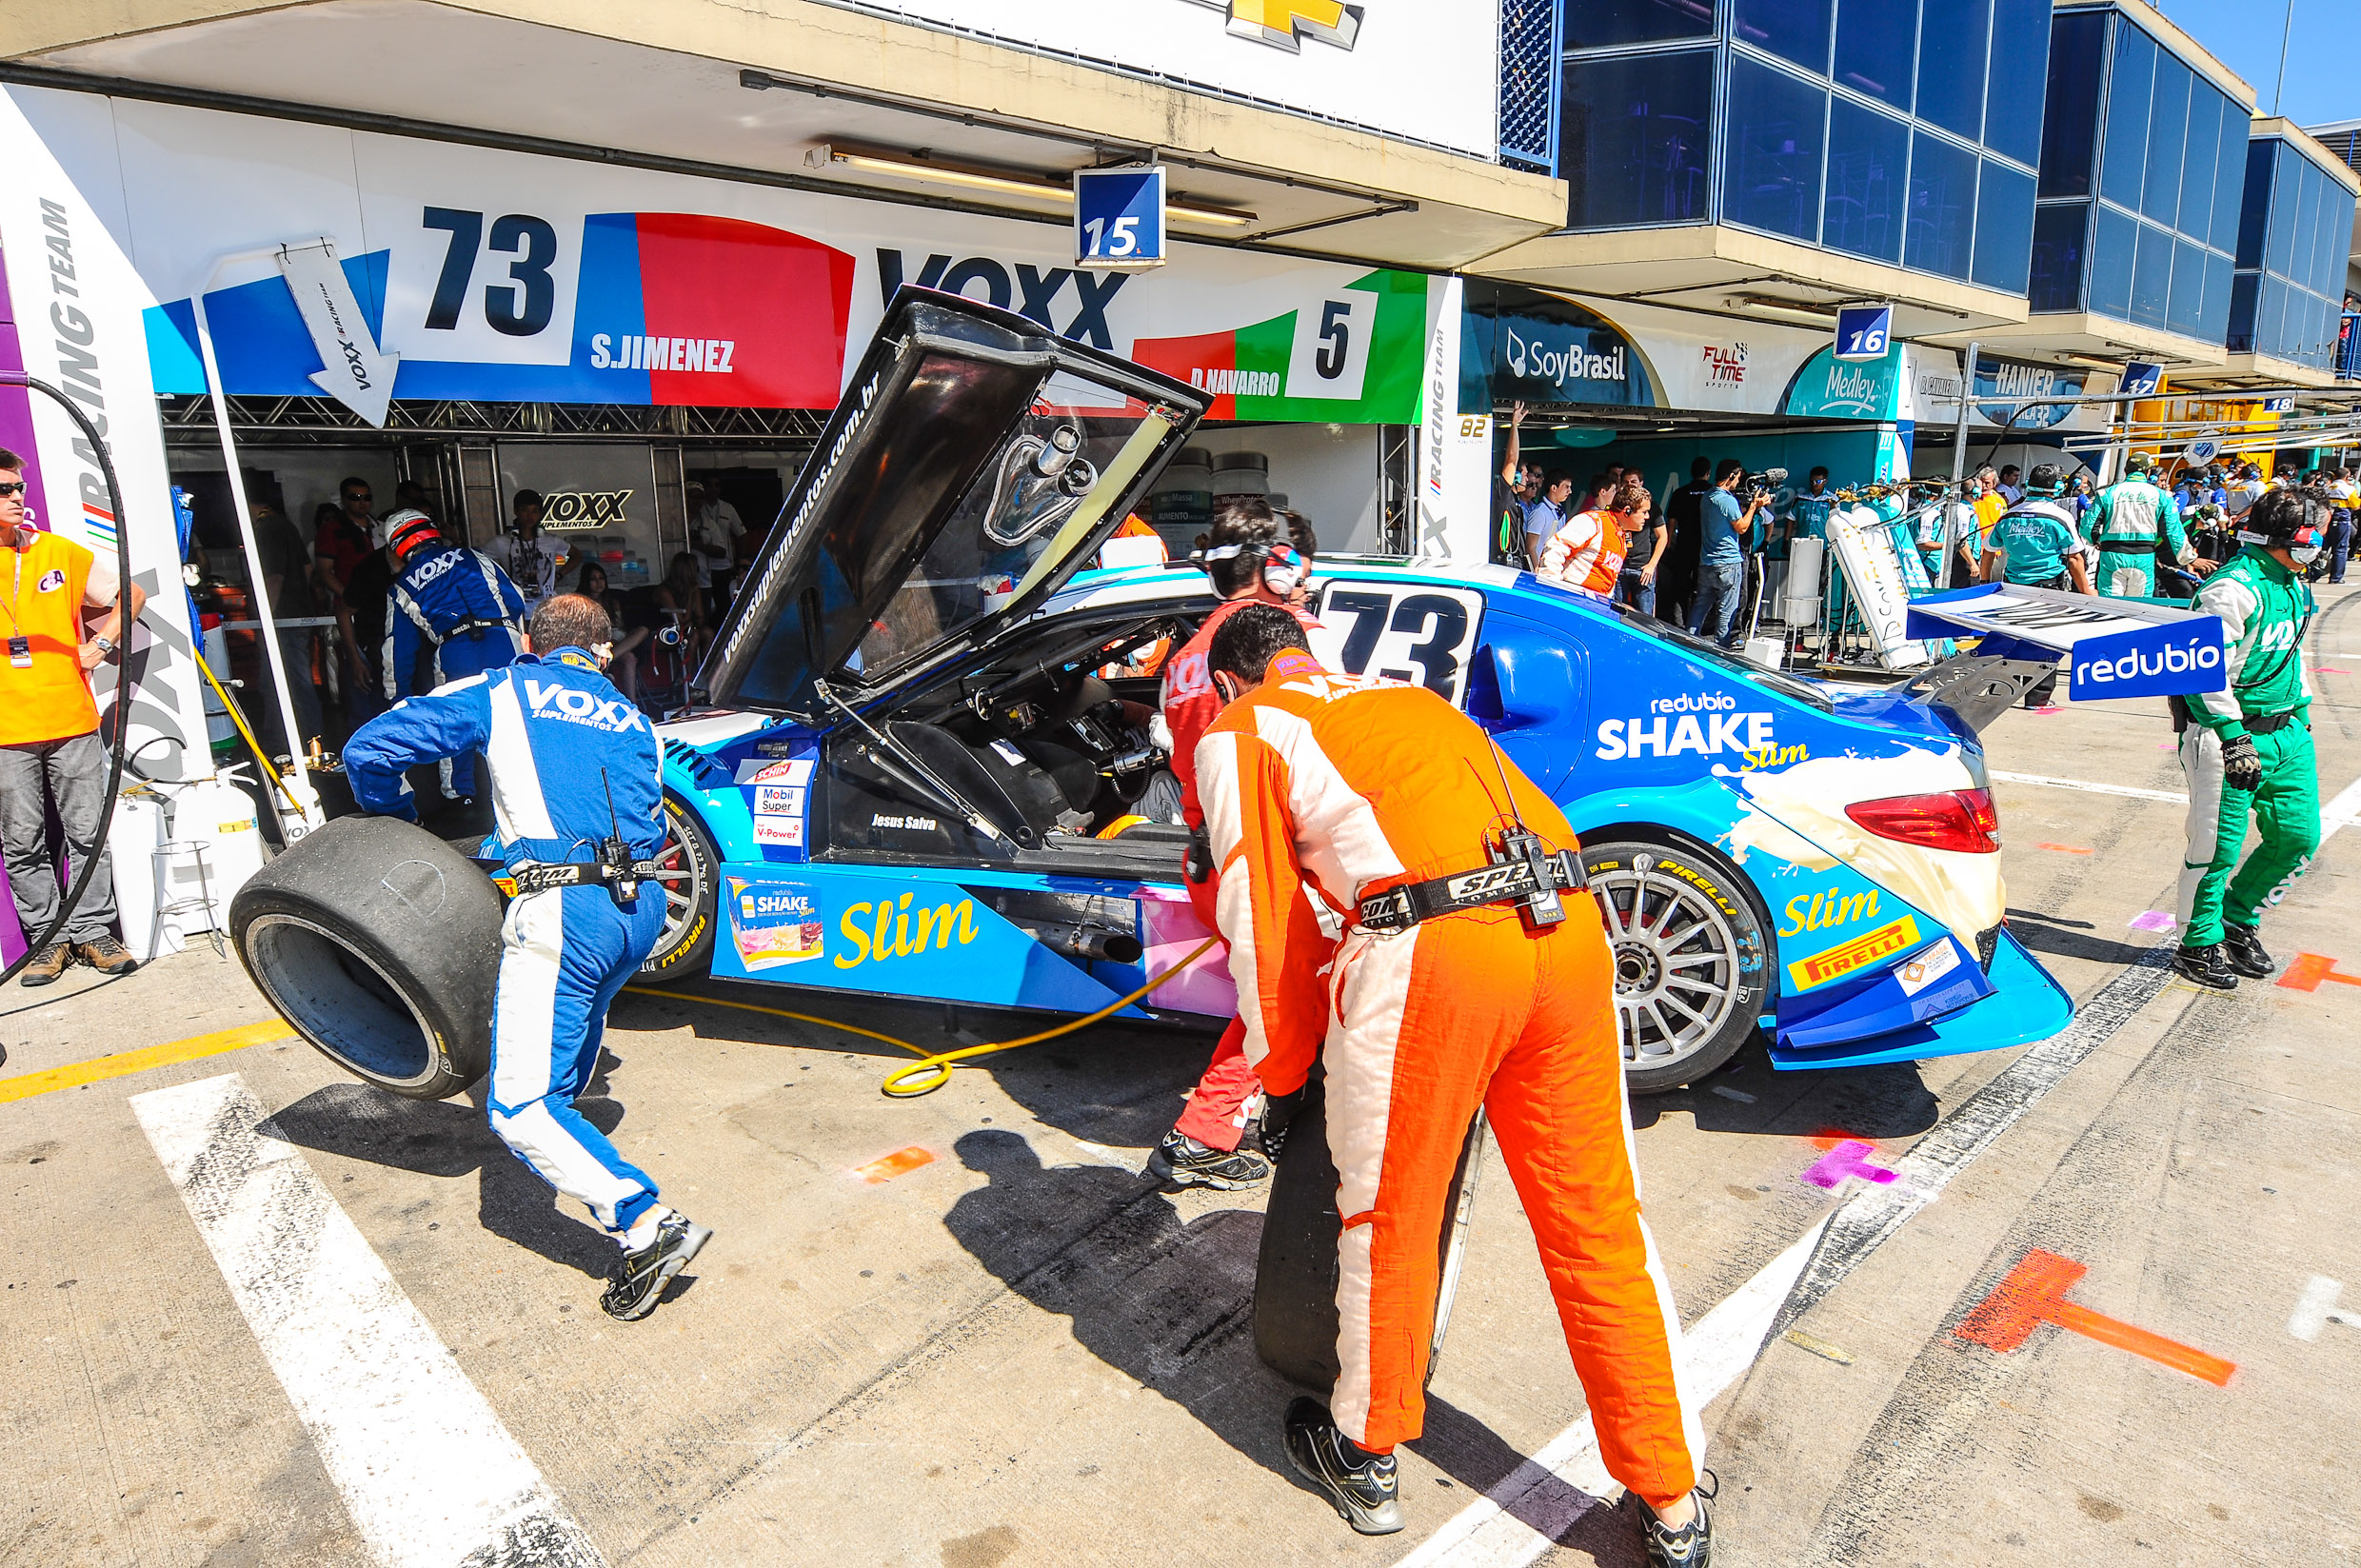 PR - 20 de outubro - Voxx Racing Team